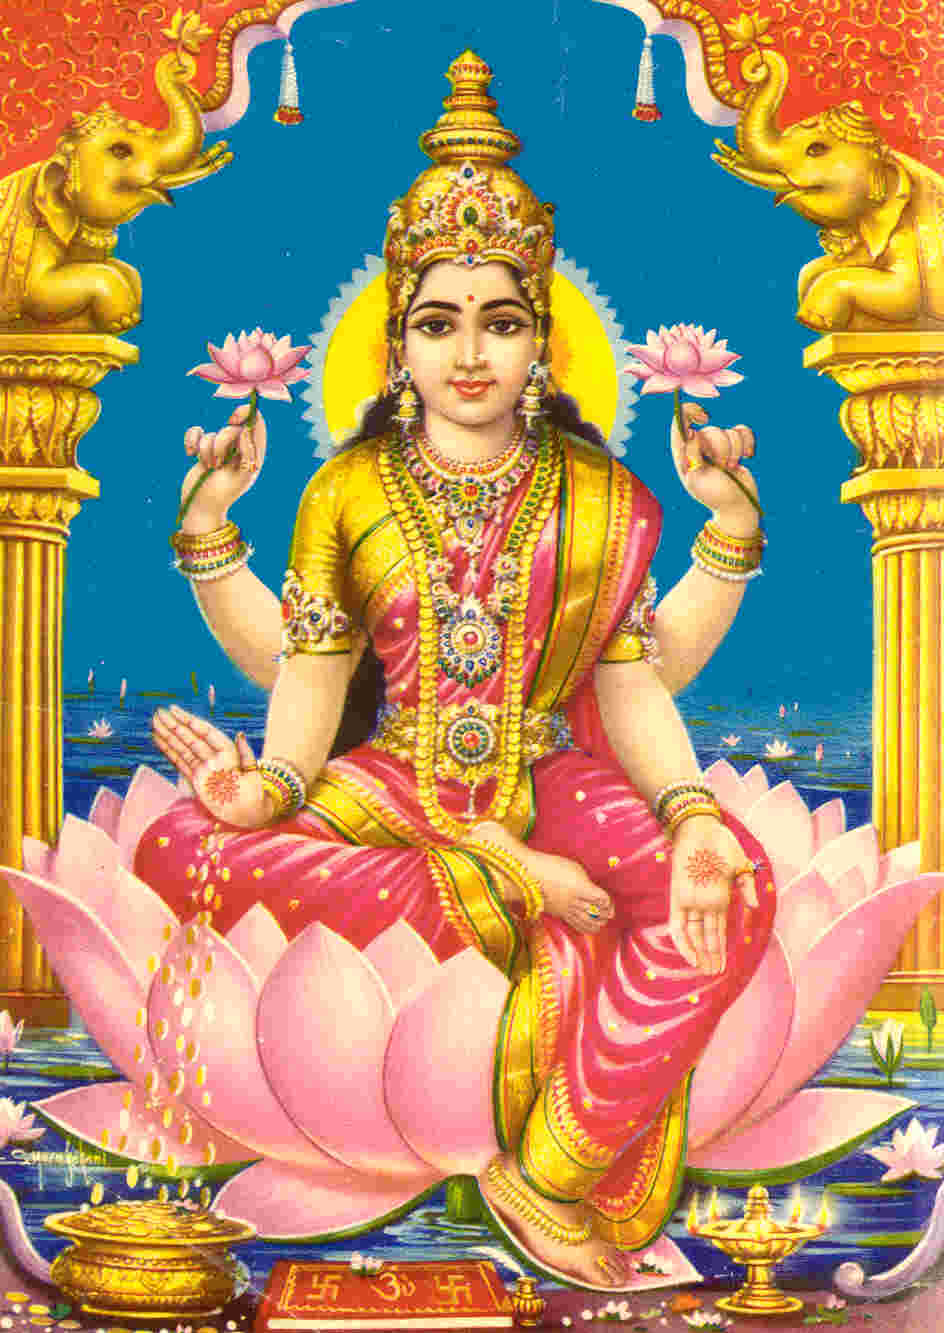 Lakshmi, Goddess of Abundance, Prosperity and Manifestation